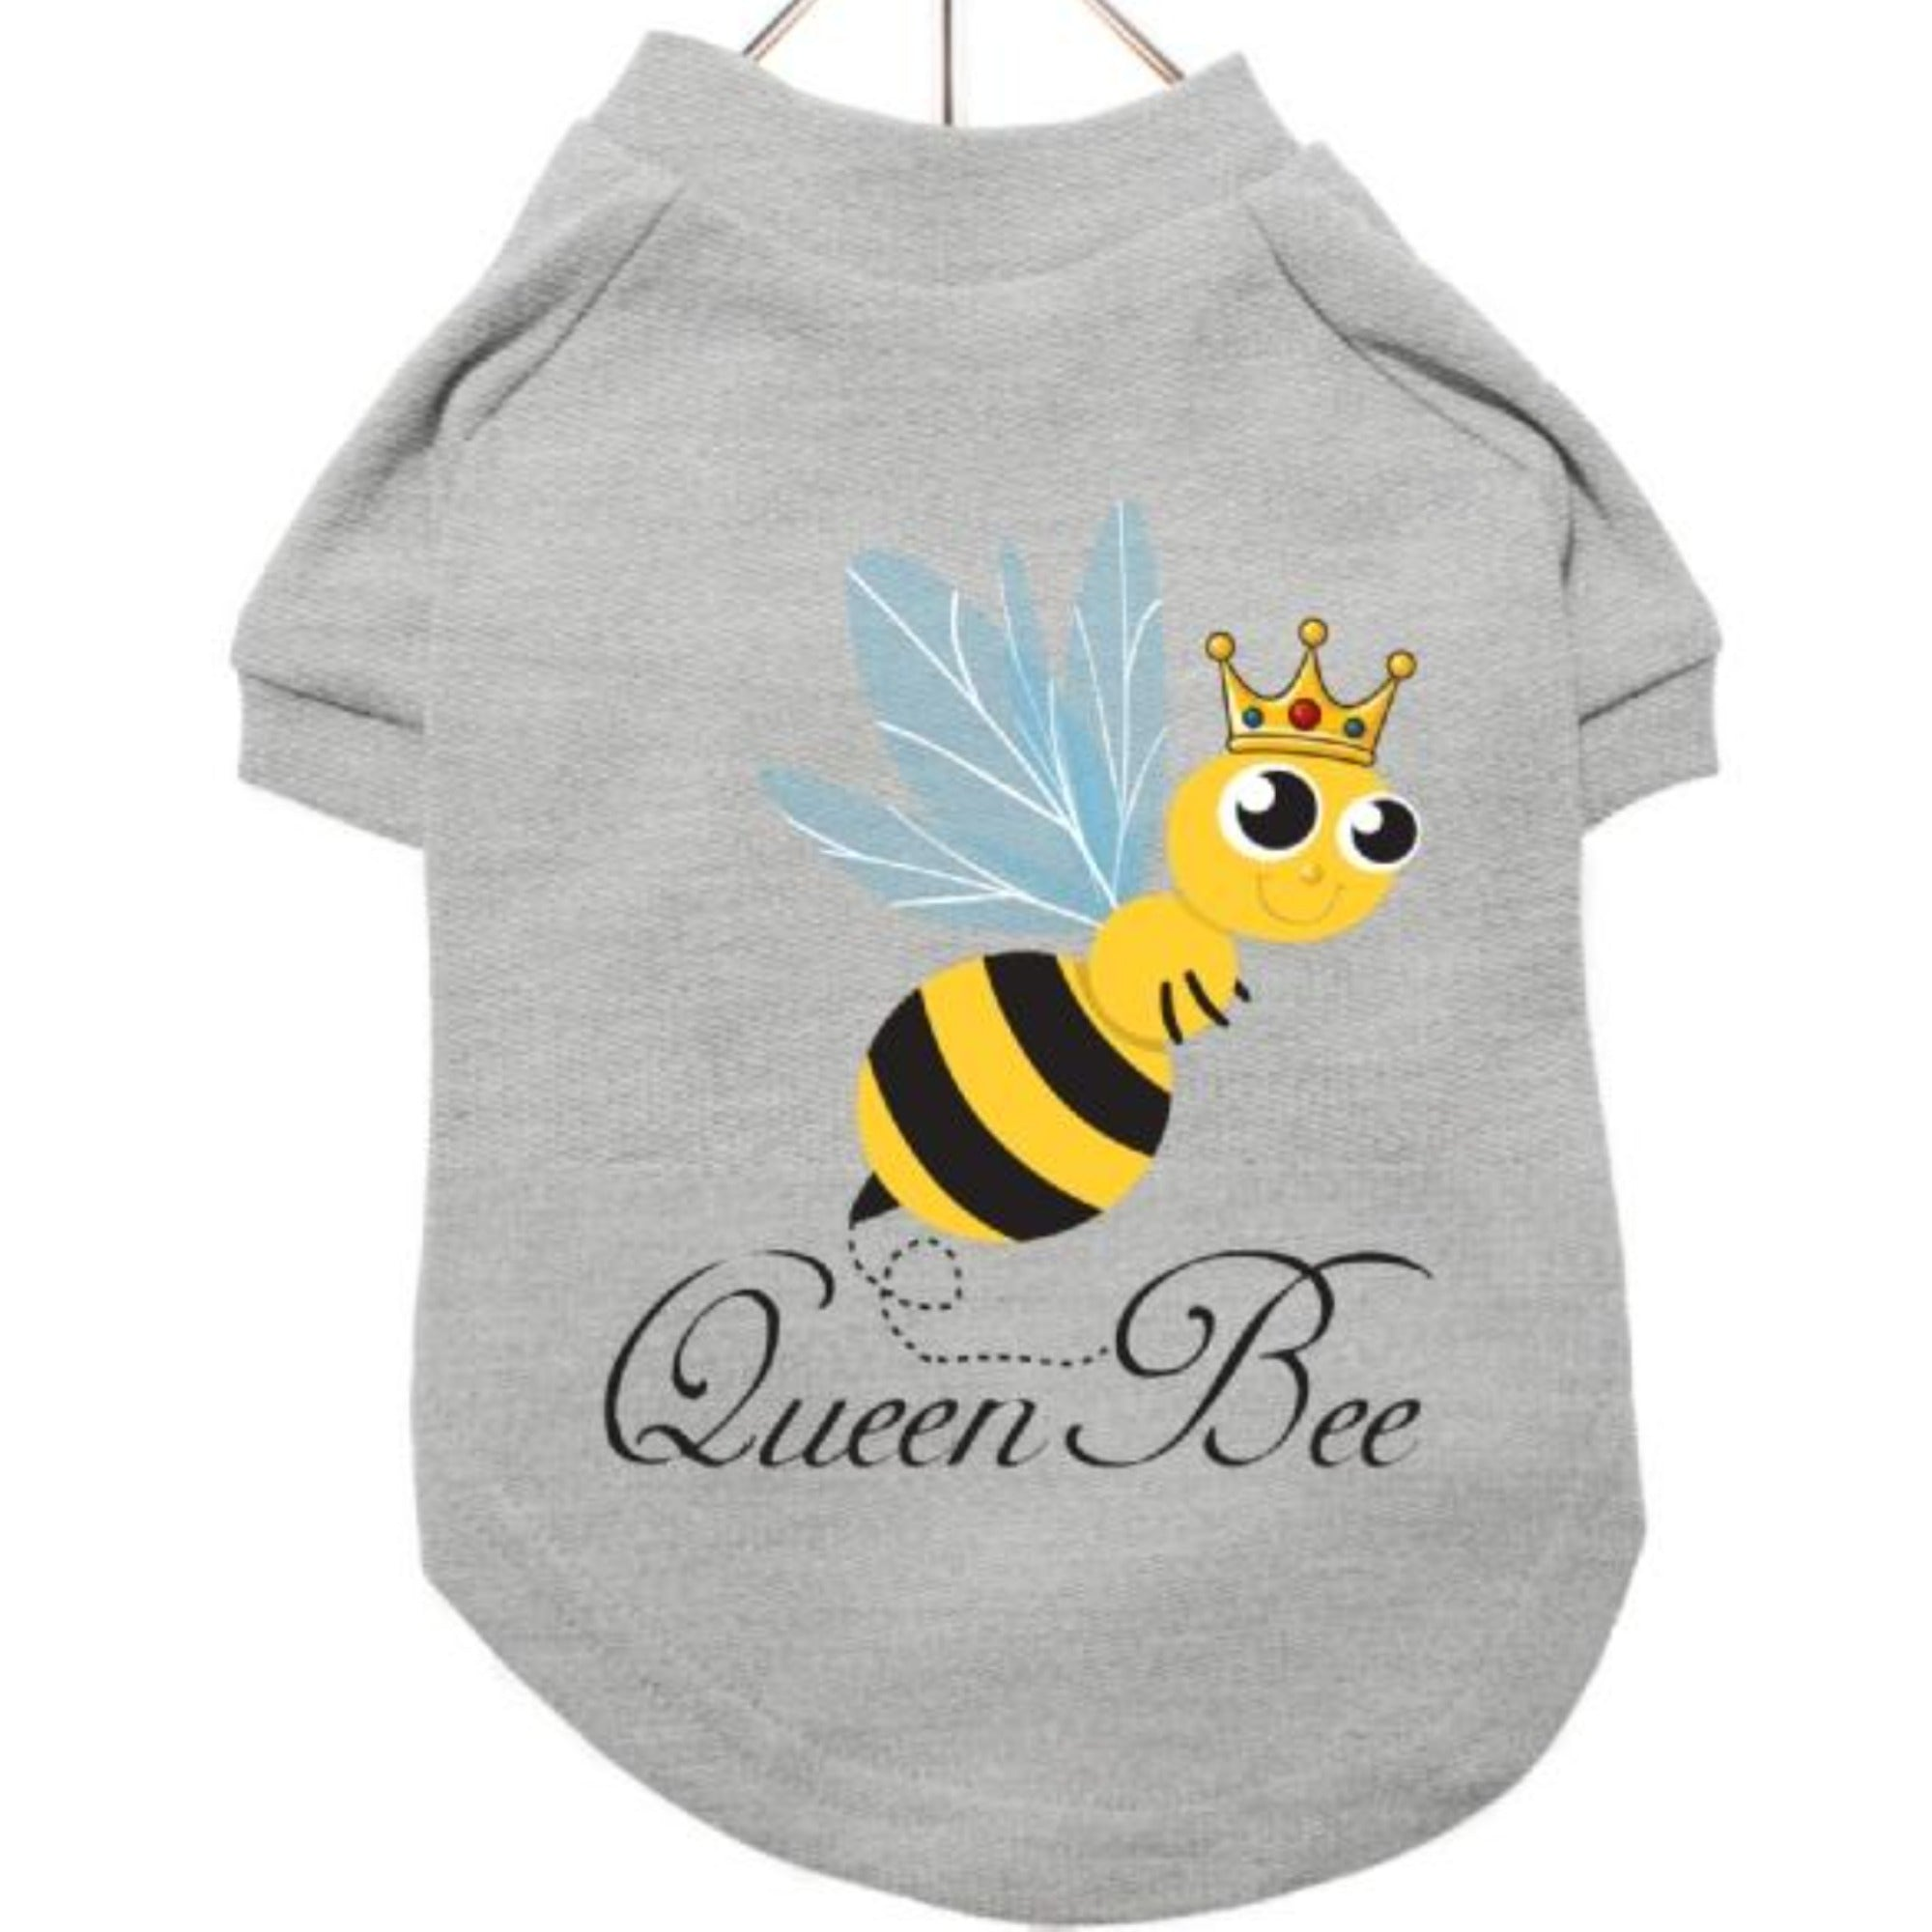 Dog T-Shirt with Queen Bee Motif in Grey